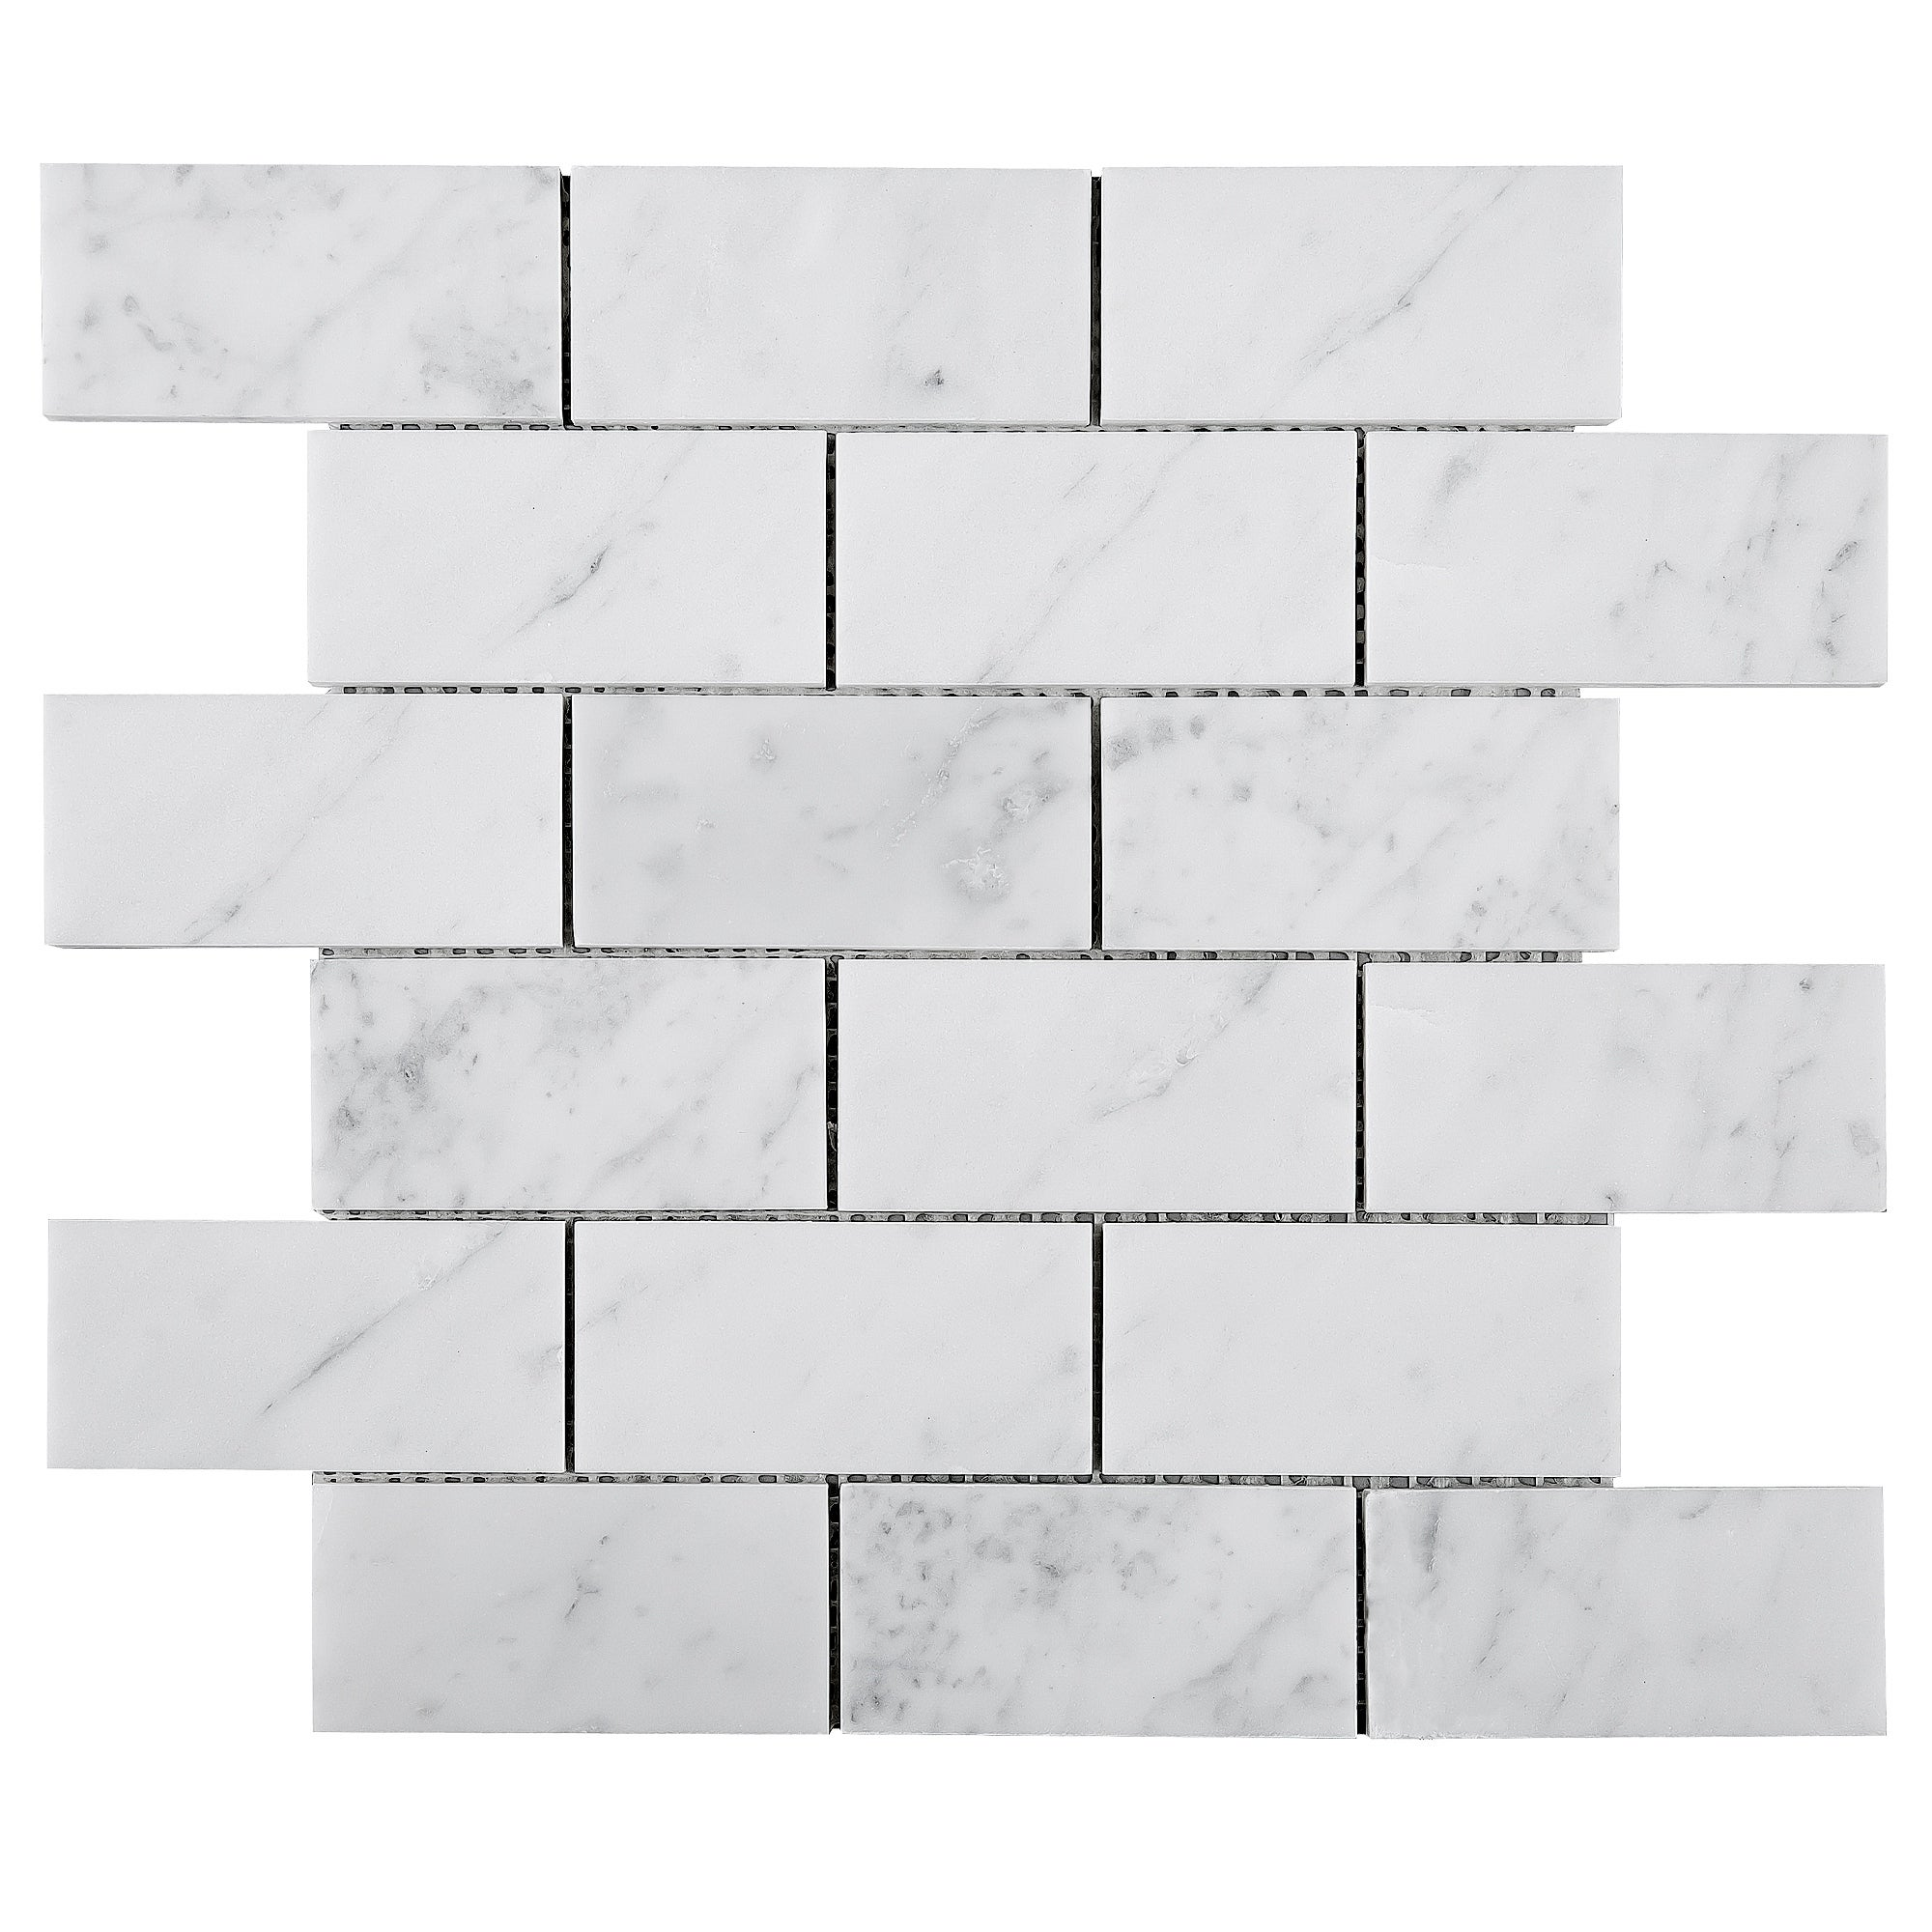 Tilegen Rectangle 2 X4 White Carrara Marble Subway Tile In White Floor And Wall Tile 10 Sheets 9 6sqft Overstock 27973540